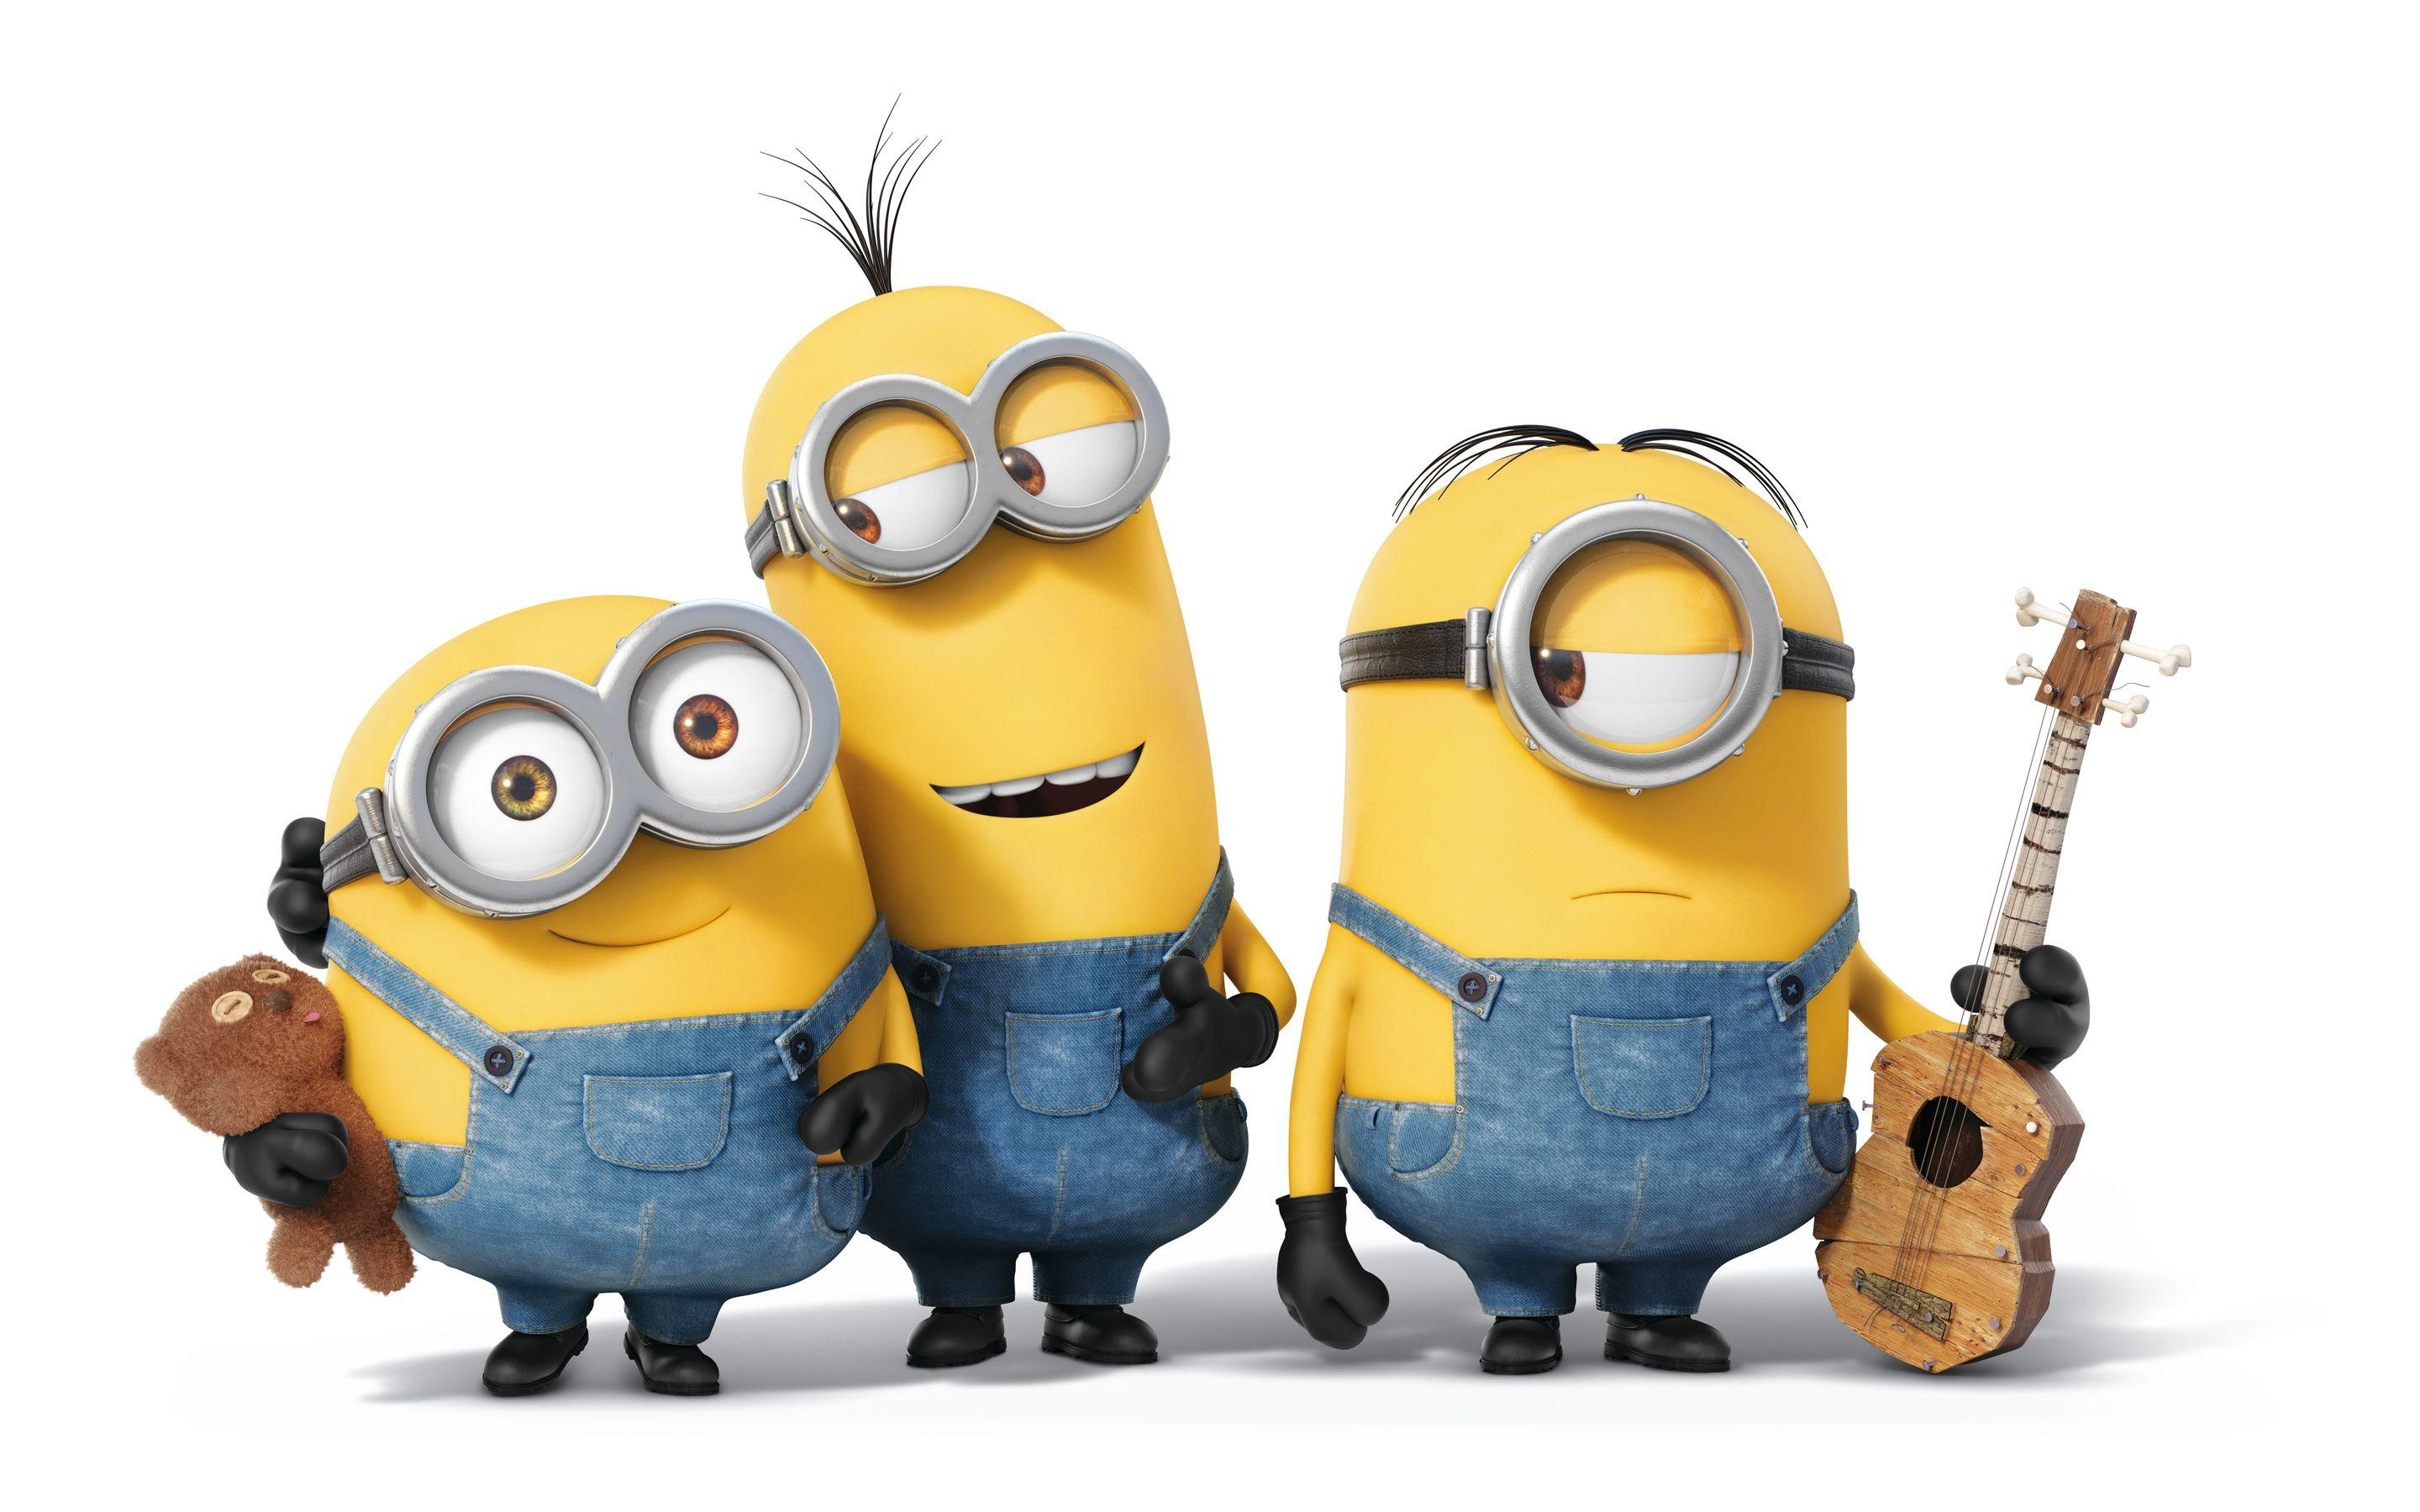 Minions Hd Wallpapers Wallpaper Cave